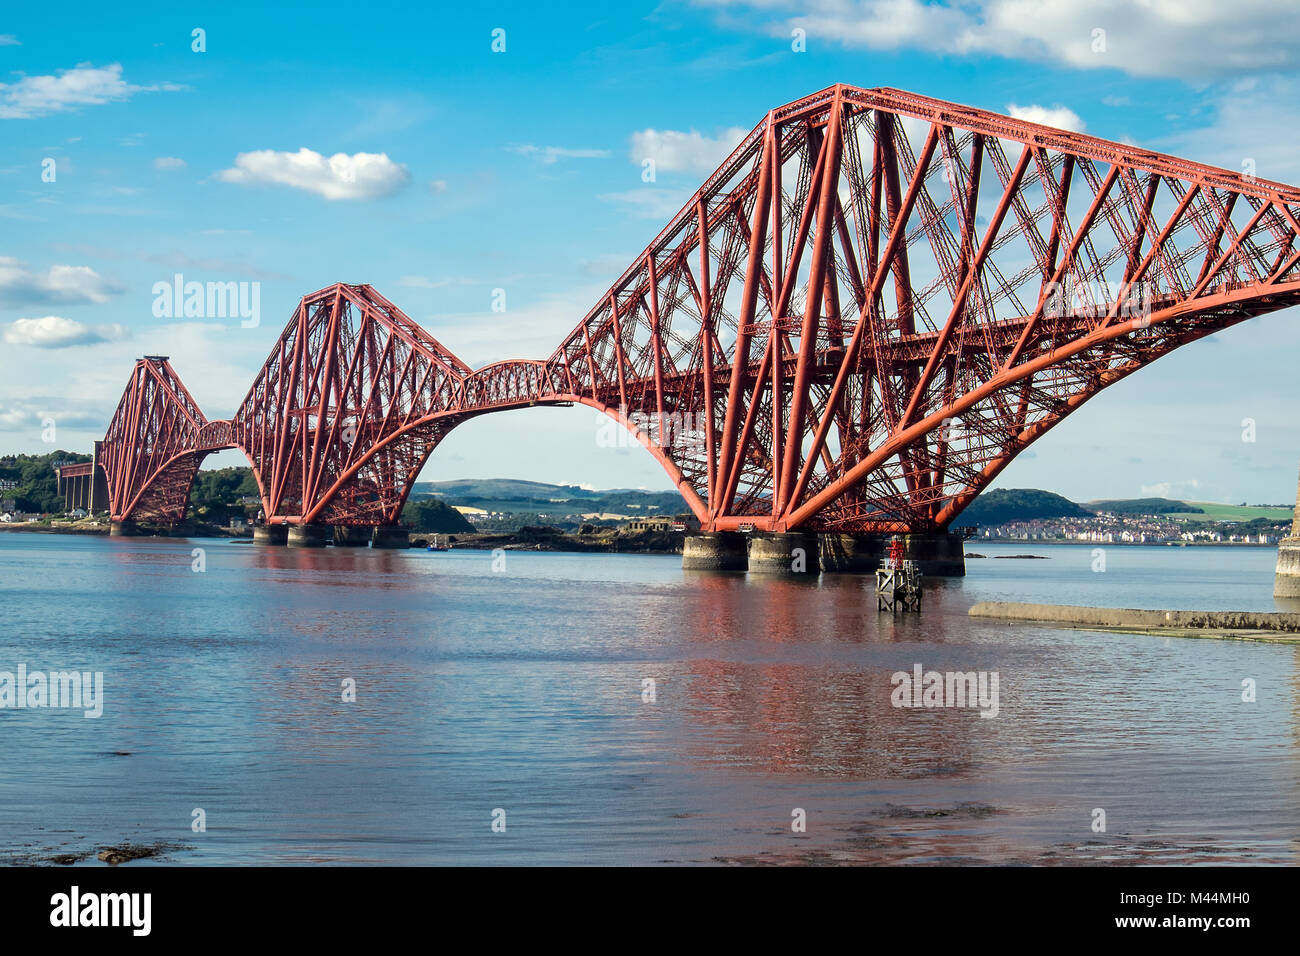 The impressing railway bridge over the Firth of Fo - Stock Image